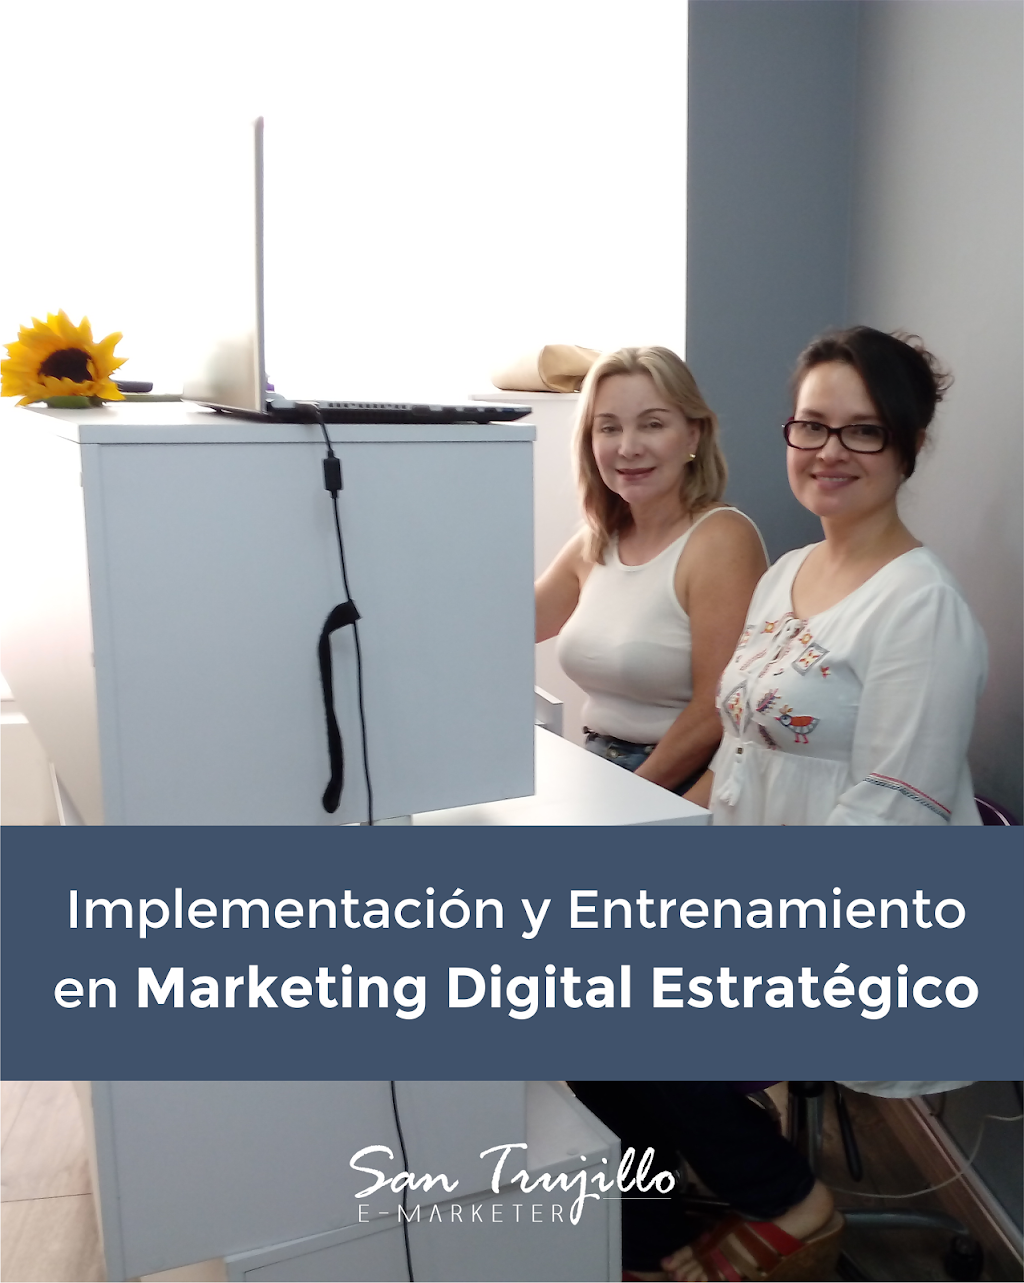 Entrenamiento en Marketing Digital Estratégico